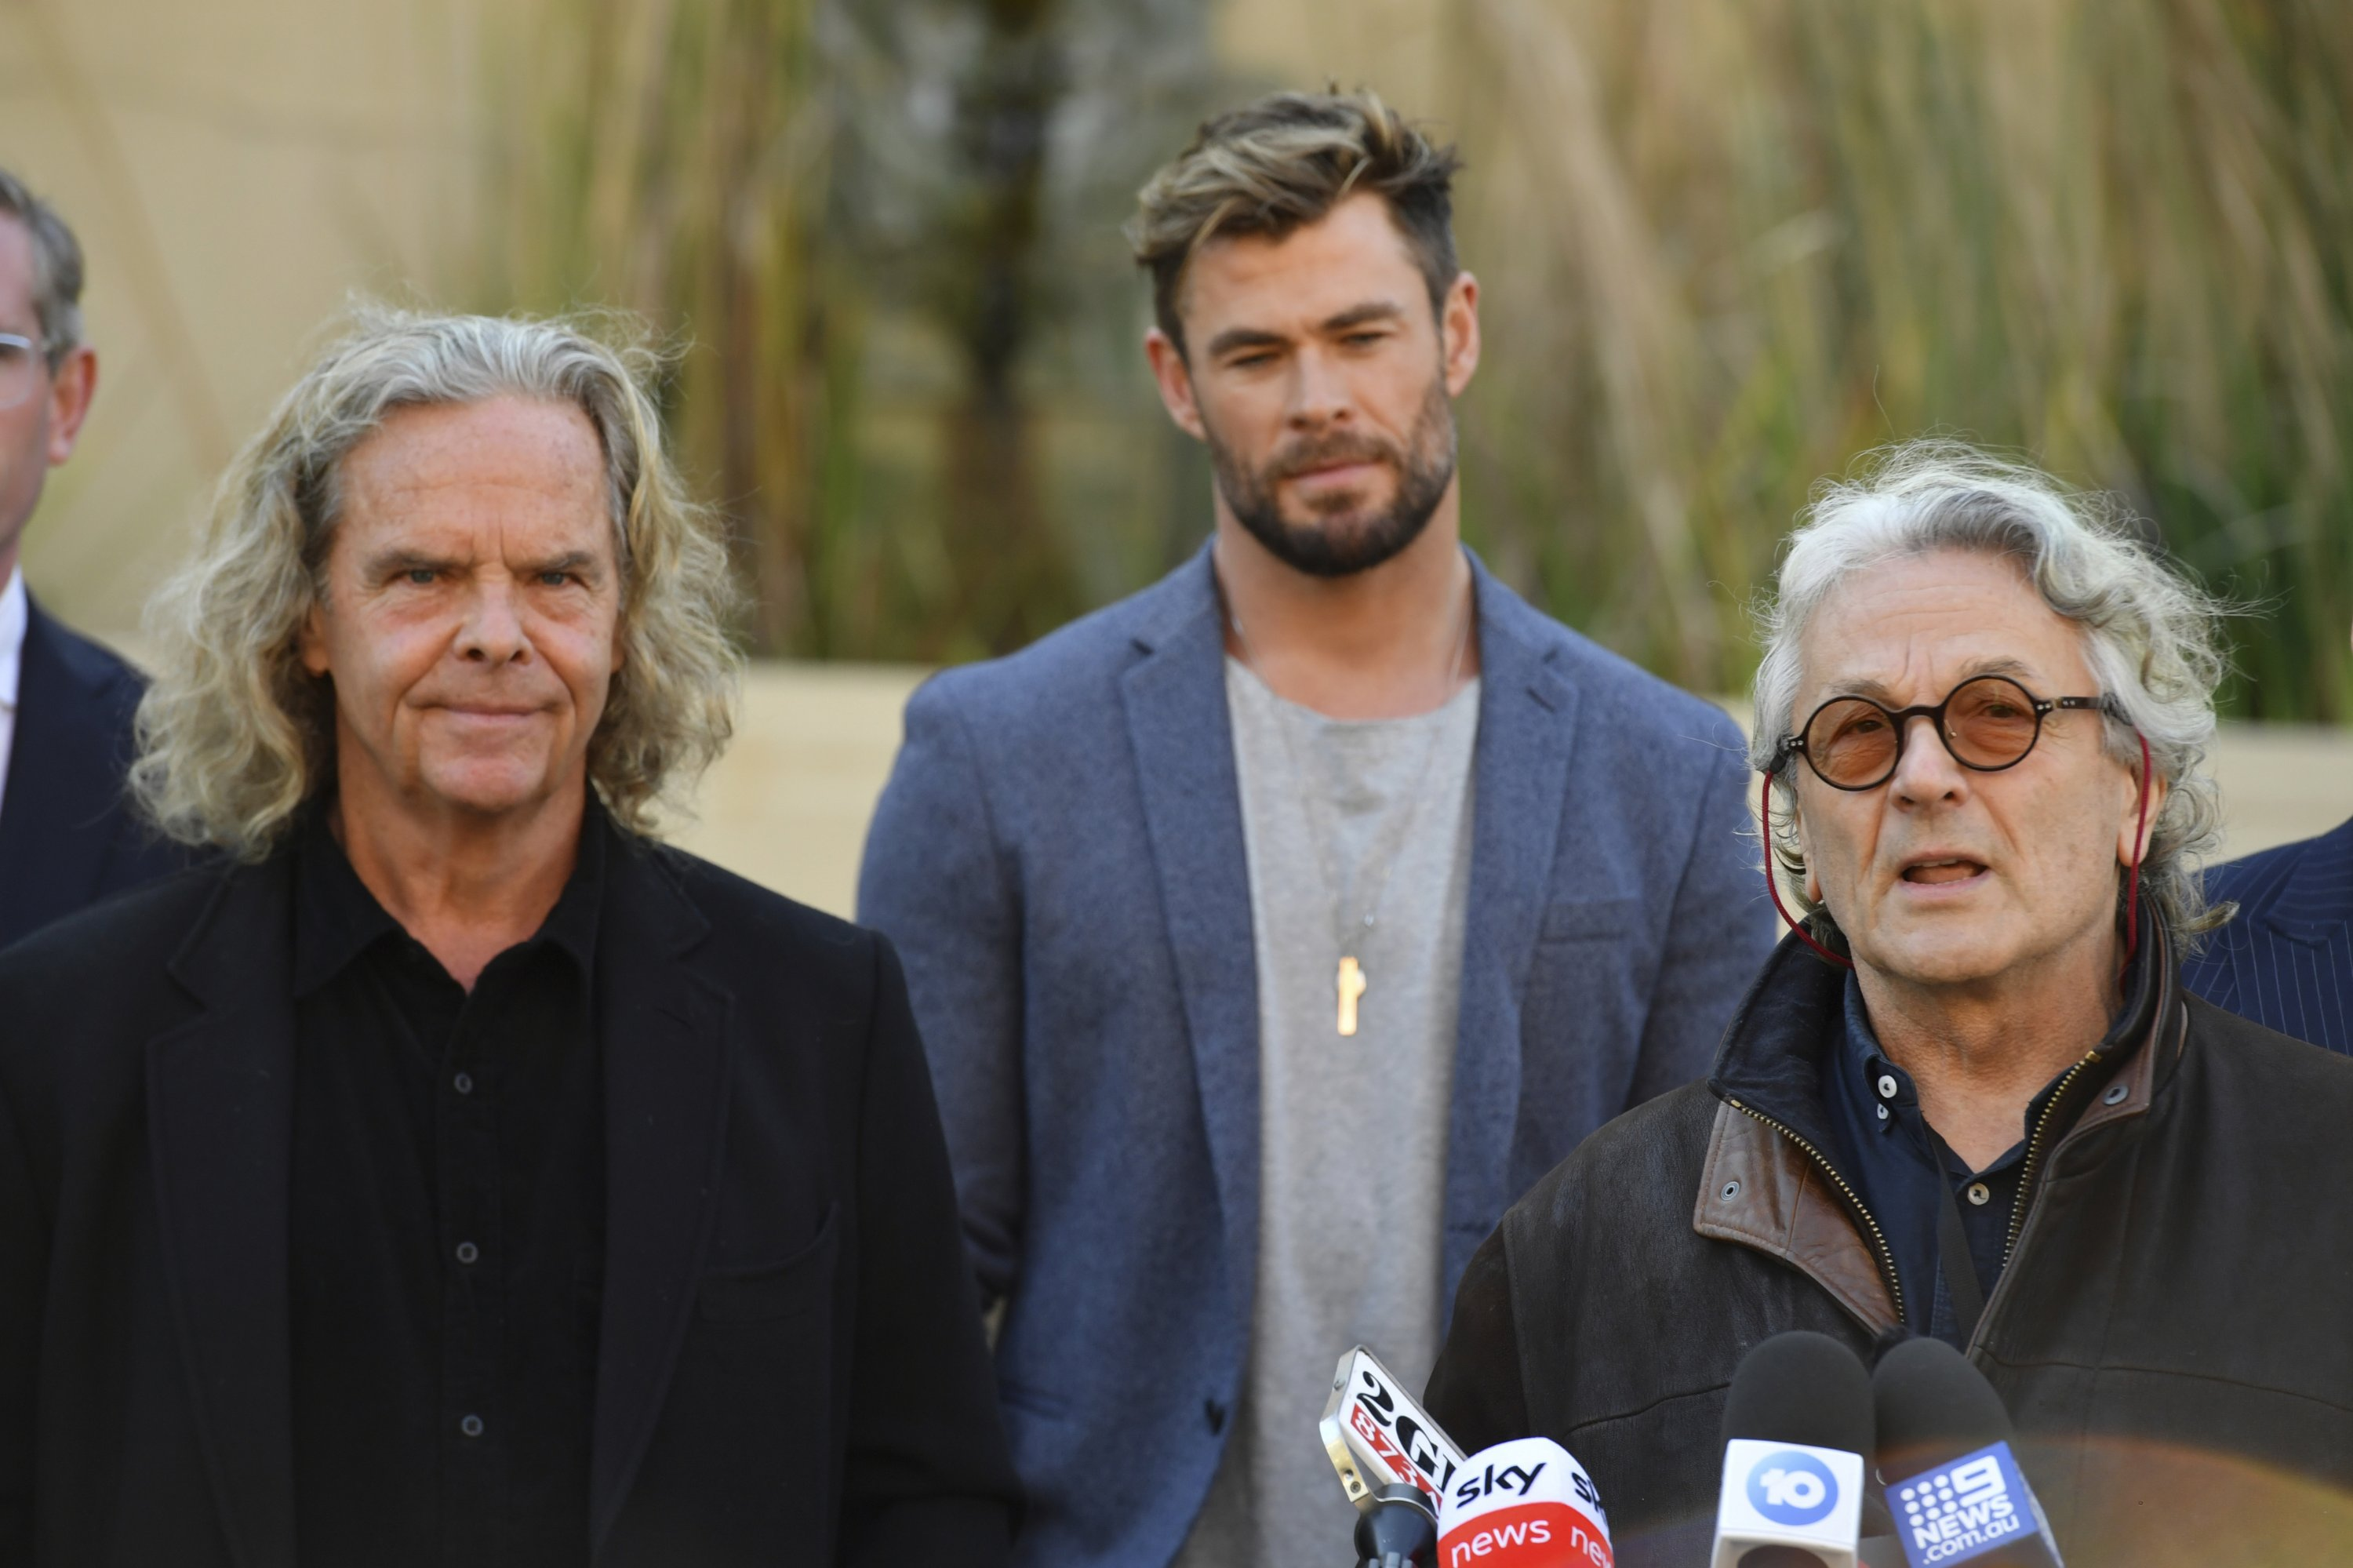 Producer Doug Mitchell (L), actor Chris Hemsworth (C) and director George Miller attend a press conference to announce the new 'Mad Max' film at Fox Studios in Sydney, Australia, April 19, 2021. (AP Photo)